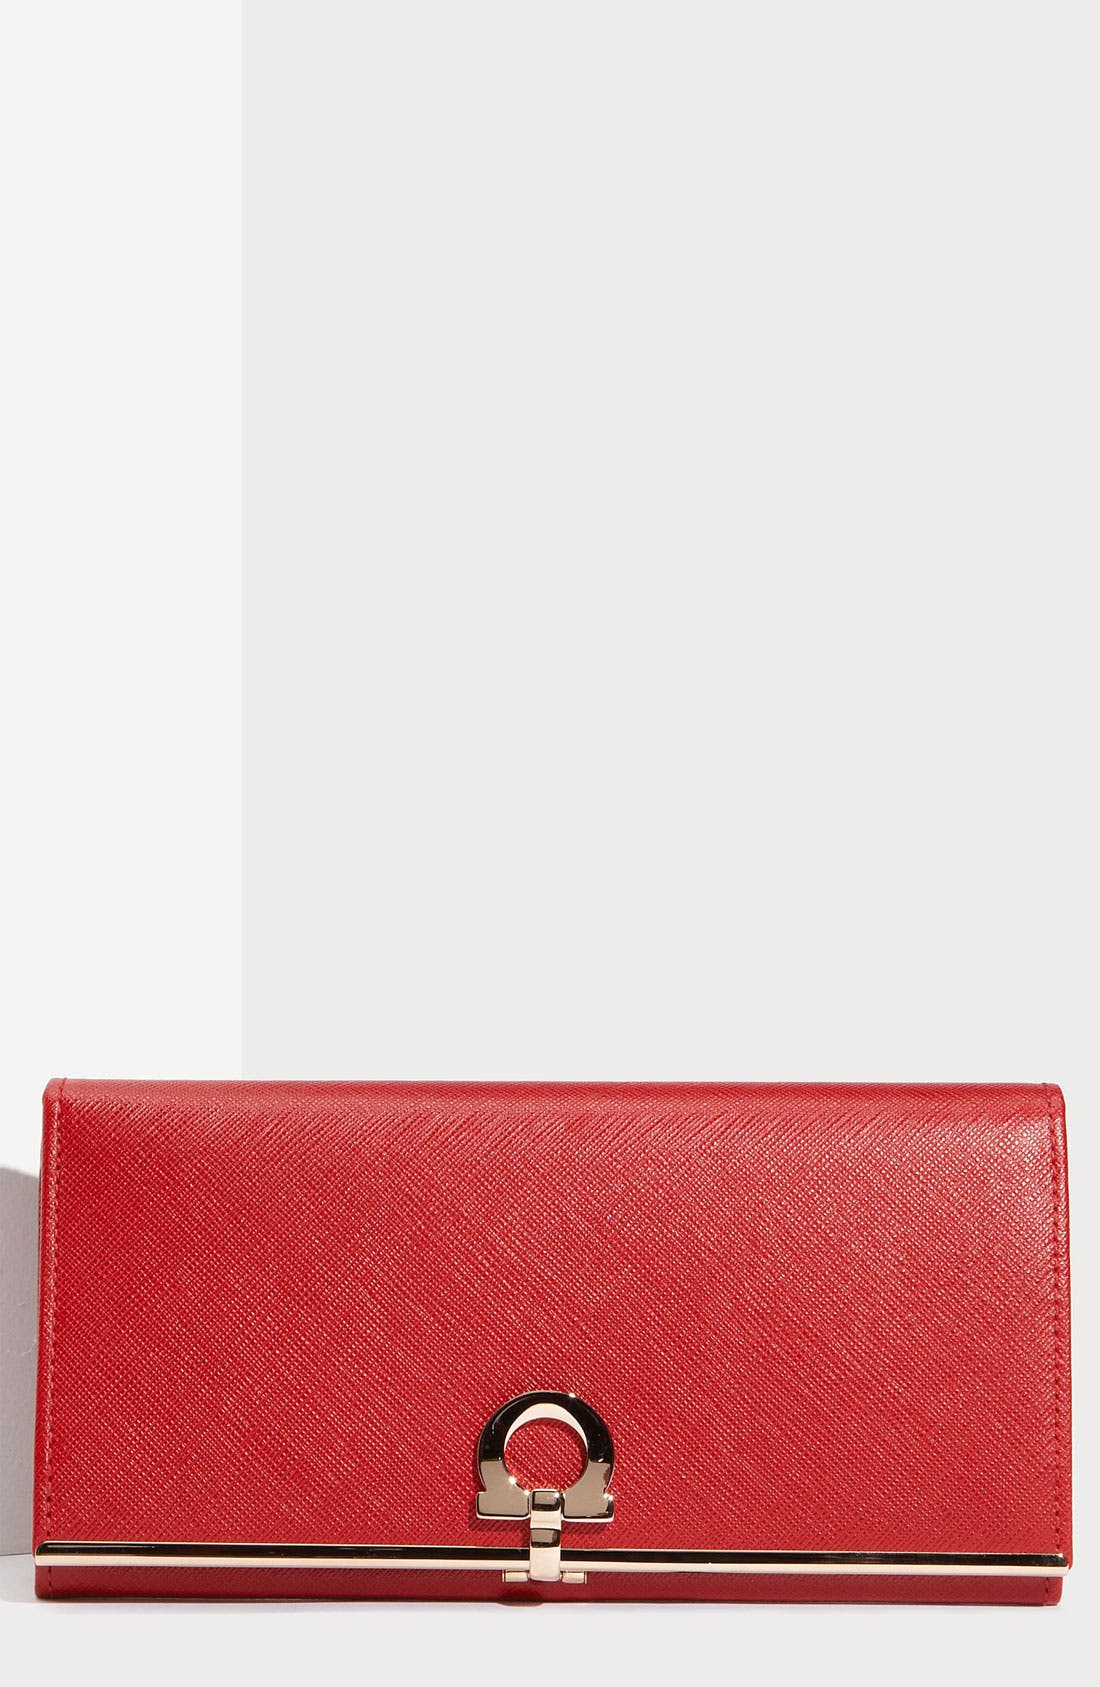 Alternate Image 1 Selected - Salvatore Ferragamo 'Gancini Icona' Saffiano Leather Wallet